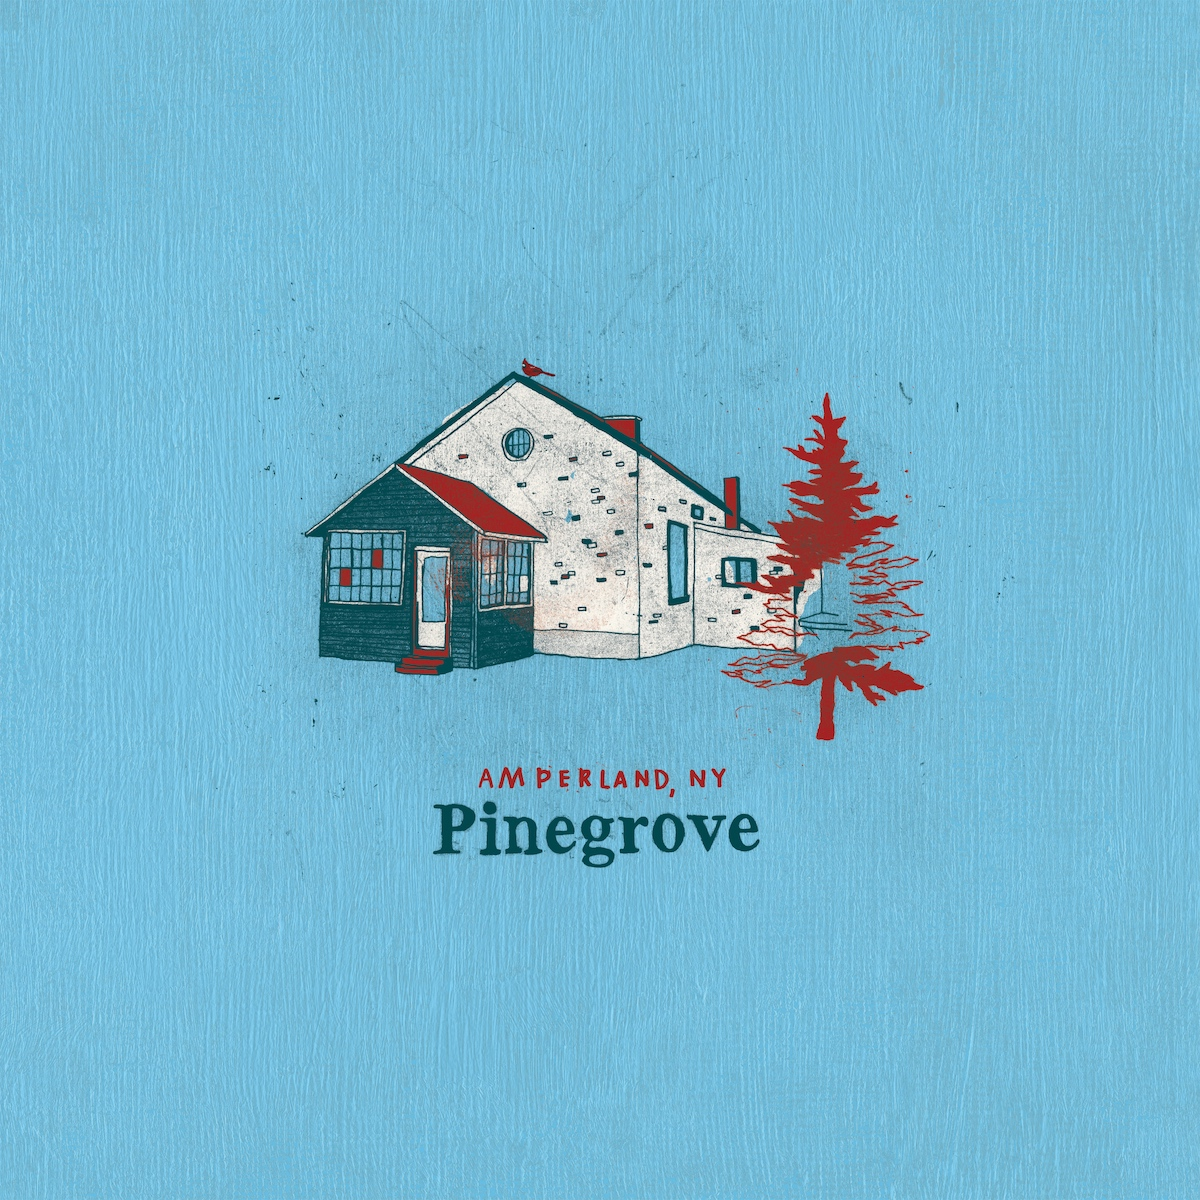 amperland ny soundtrack movie pinegrove artwork